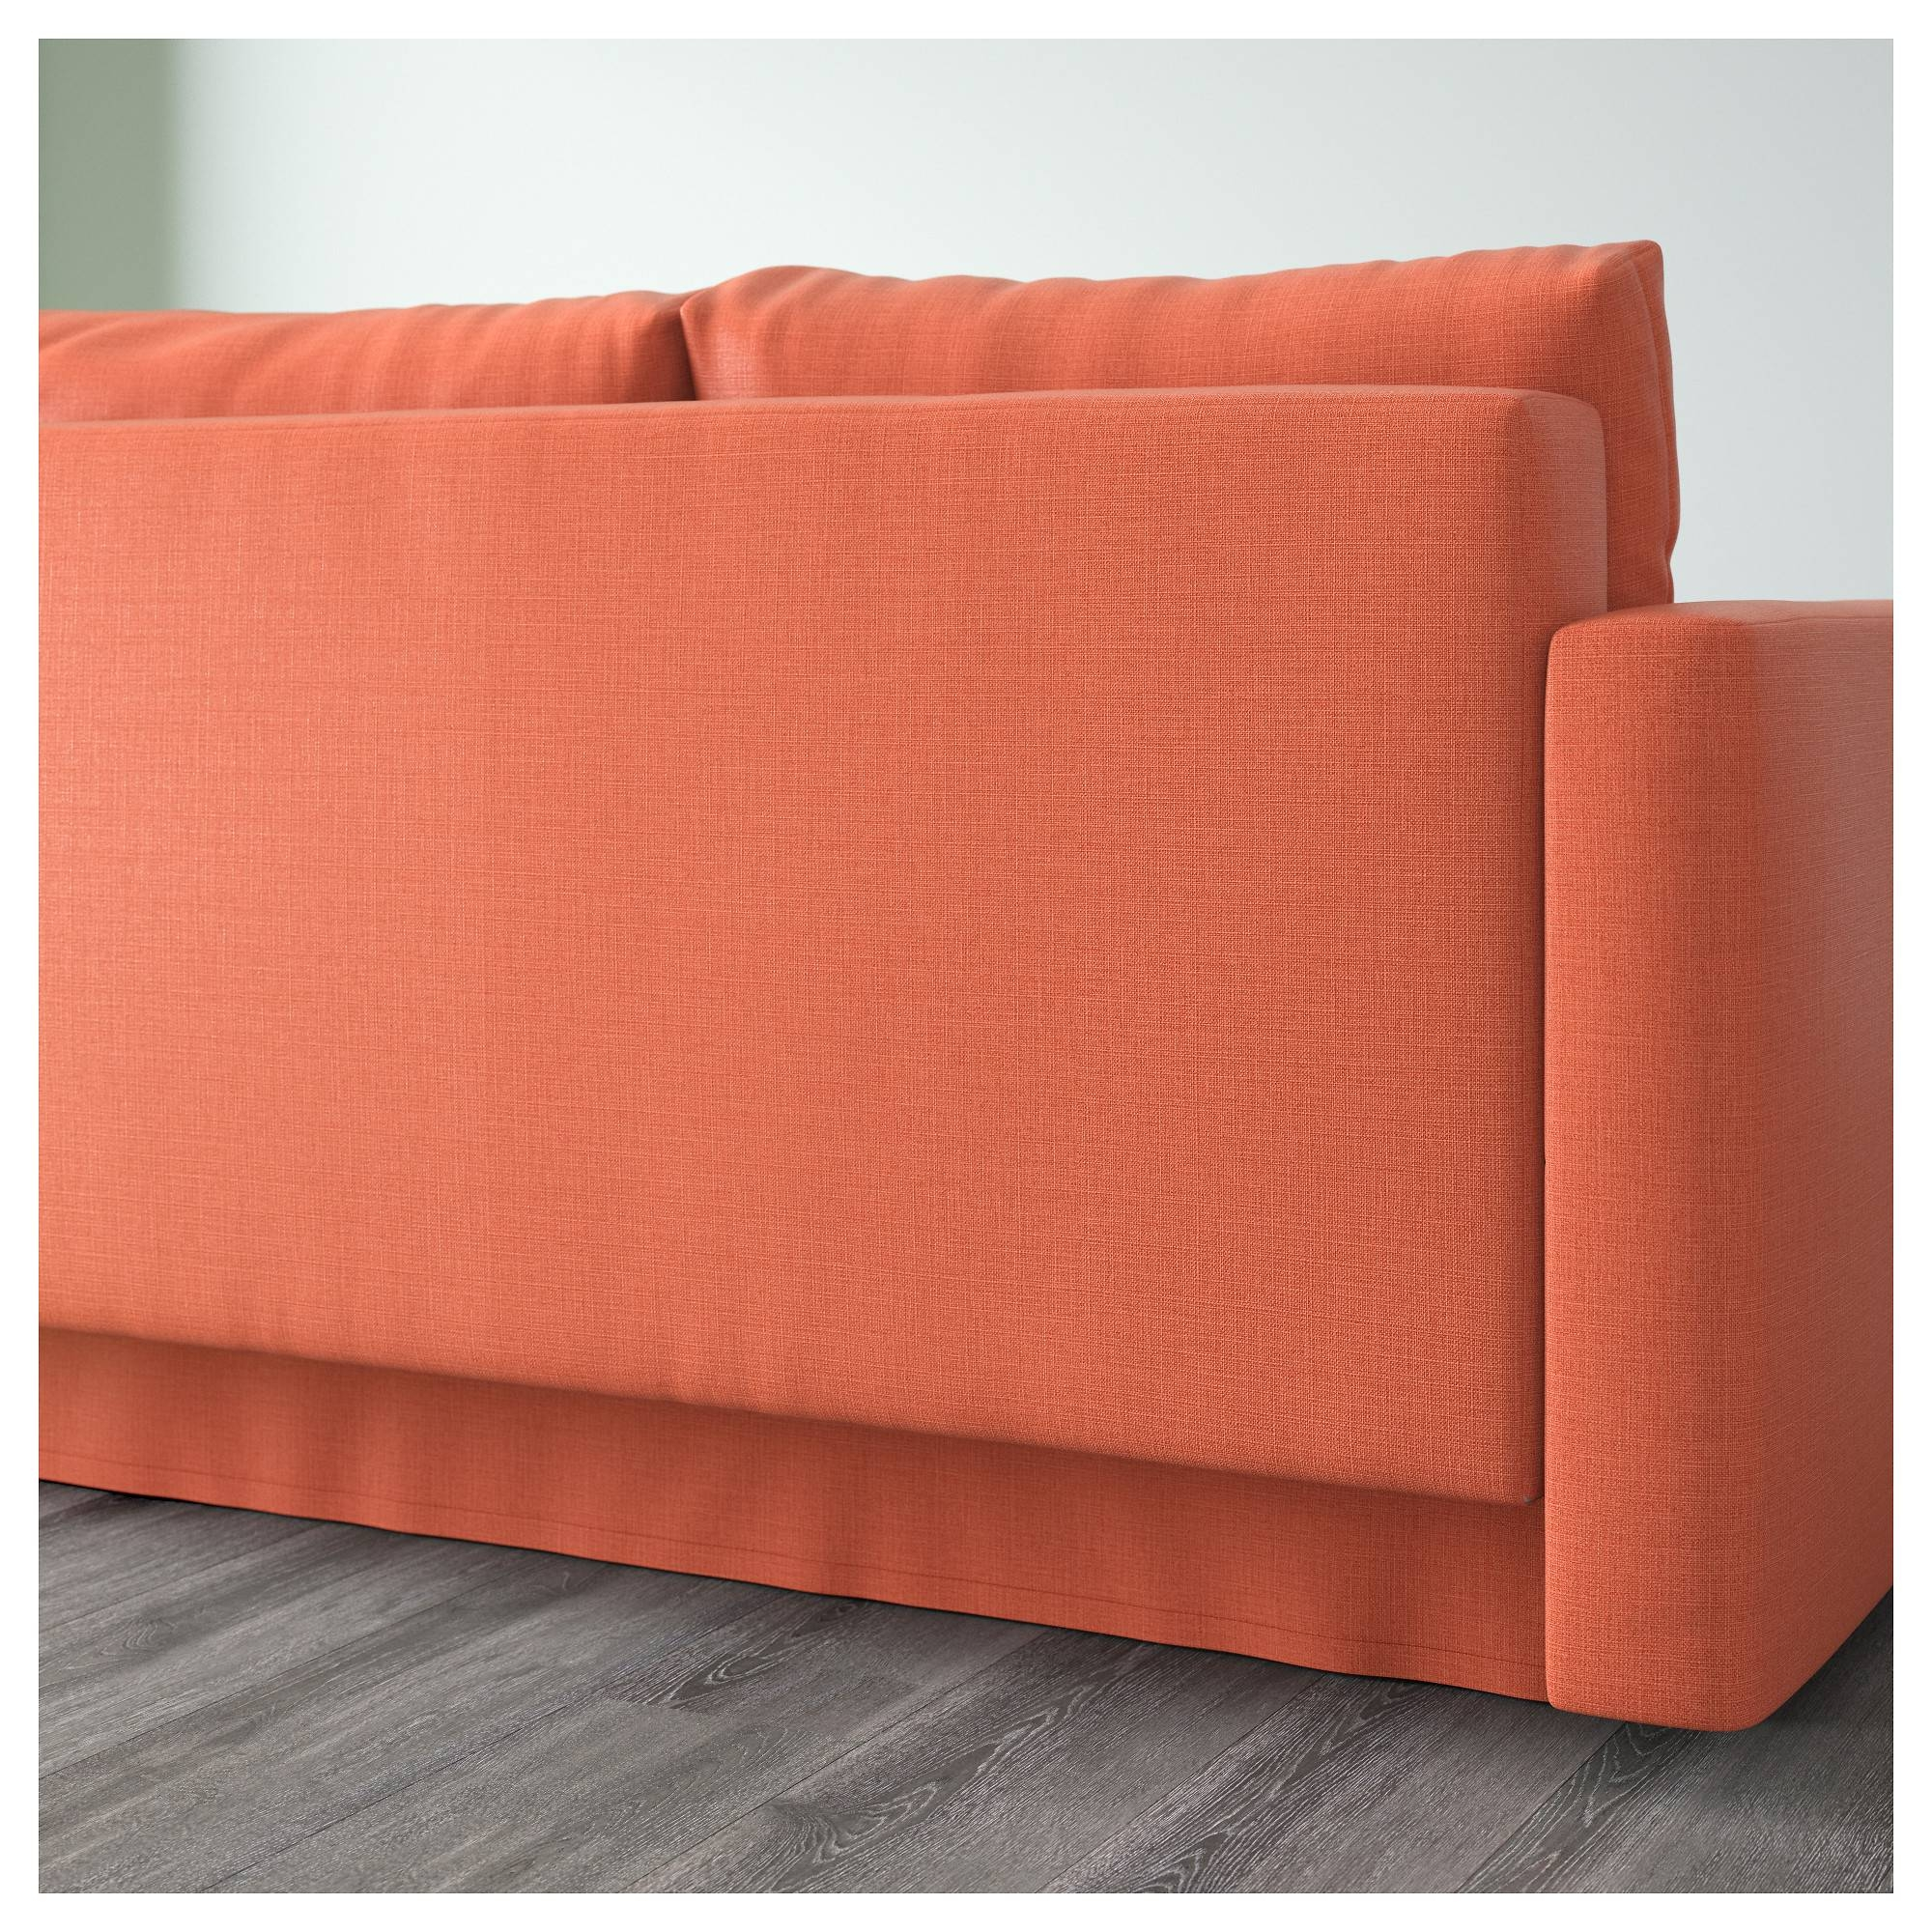 Friheten Corner Sofa-Bed With Storage Skiftebo Dark Orange - Ikea with Orange Ikea Sofas (Image 11 of 30)